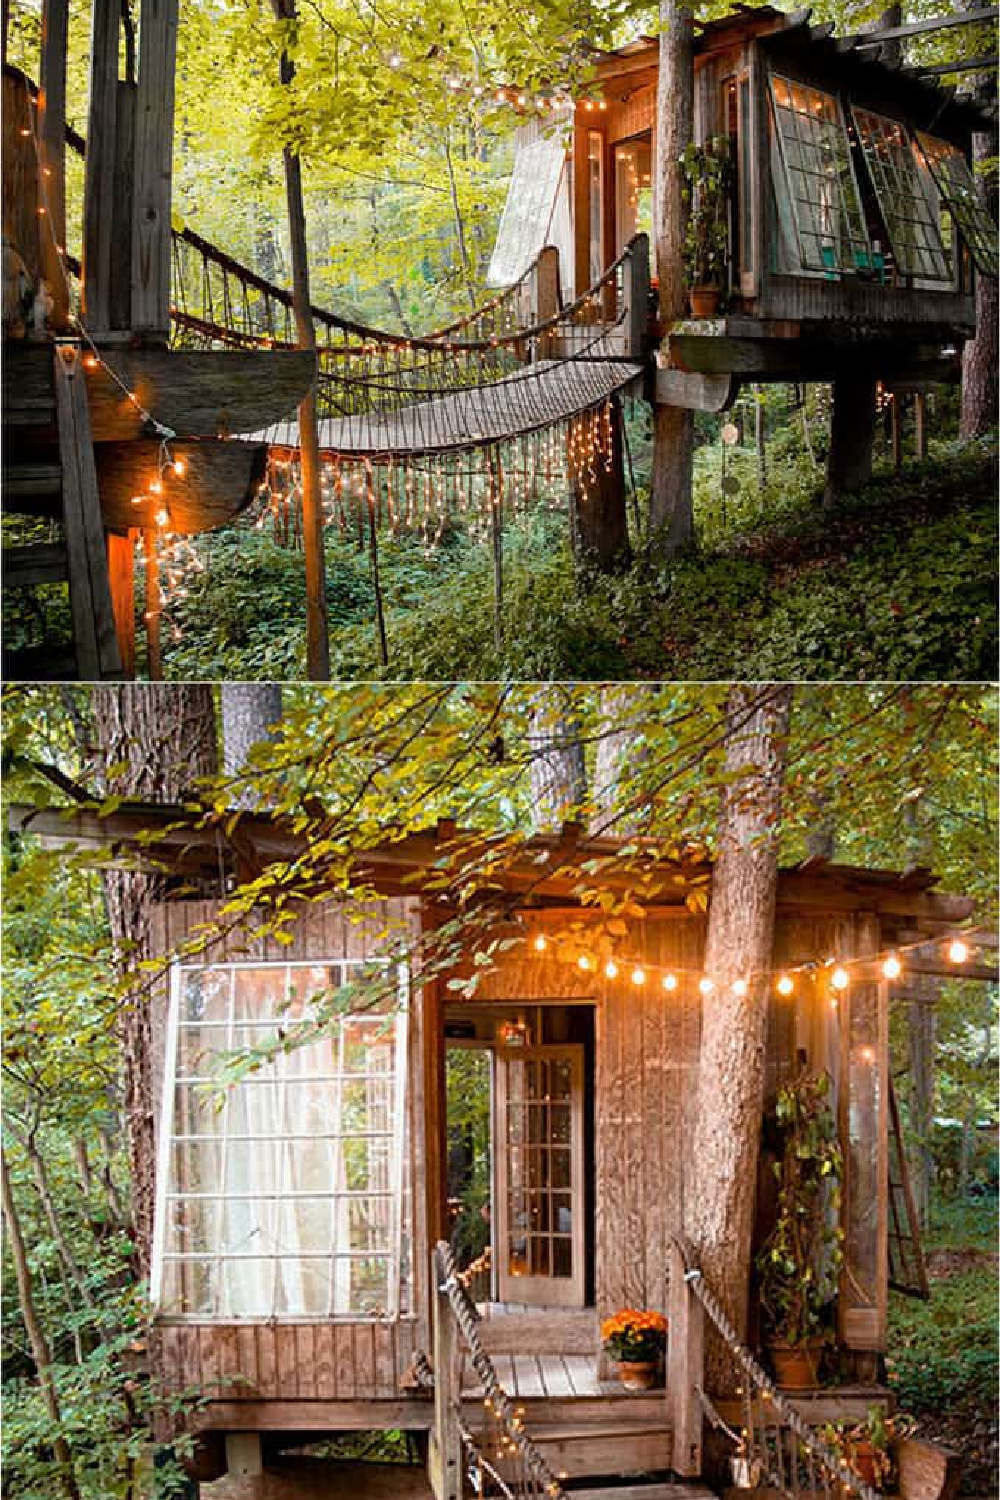 Inspiring treehouse with bridge by Peter Bahouth (photo by Lindsay Appel) in the book MY COOL SHED. #treehouse #dreamshed #sheshed #backyardoasis